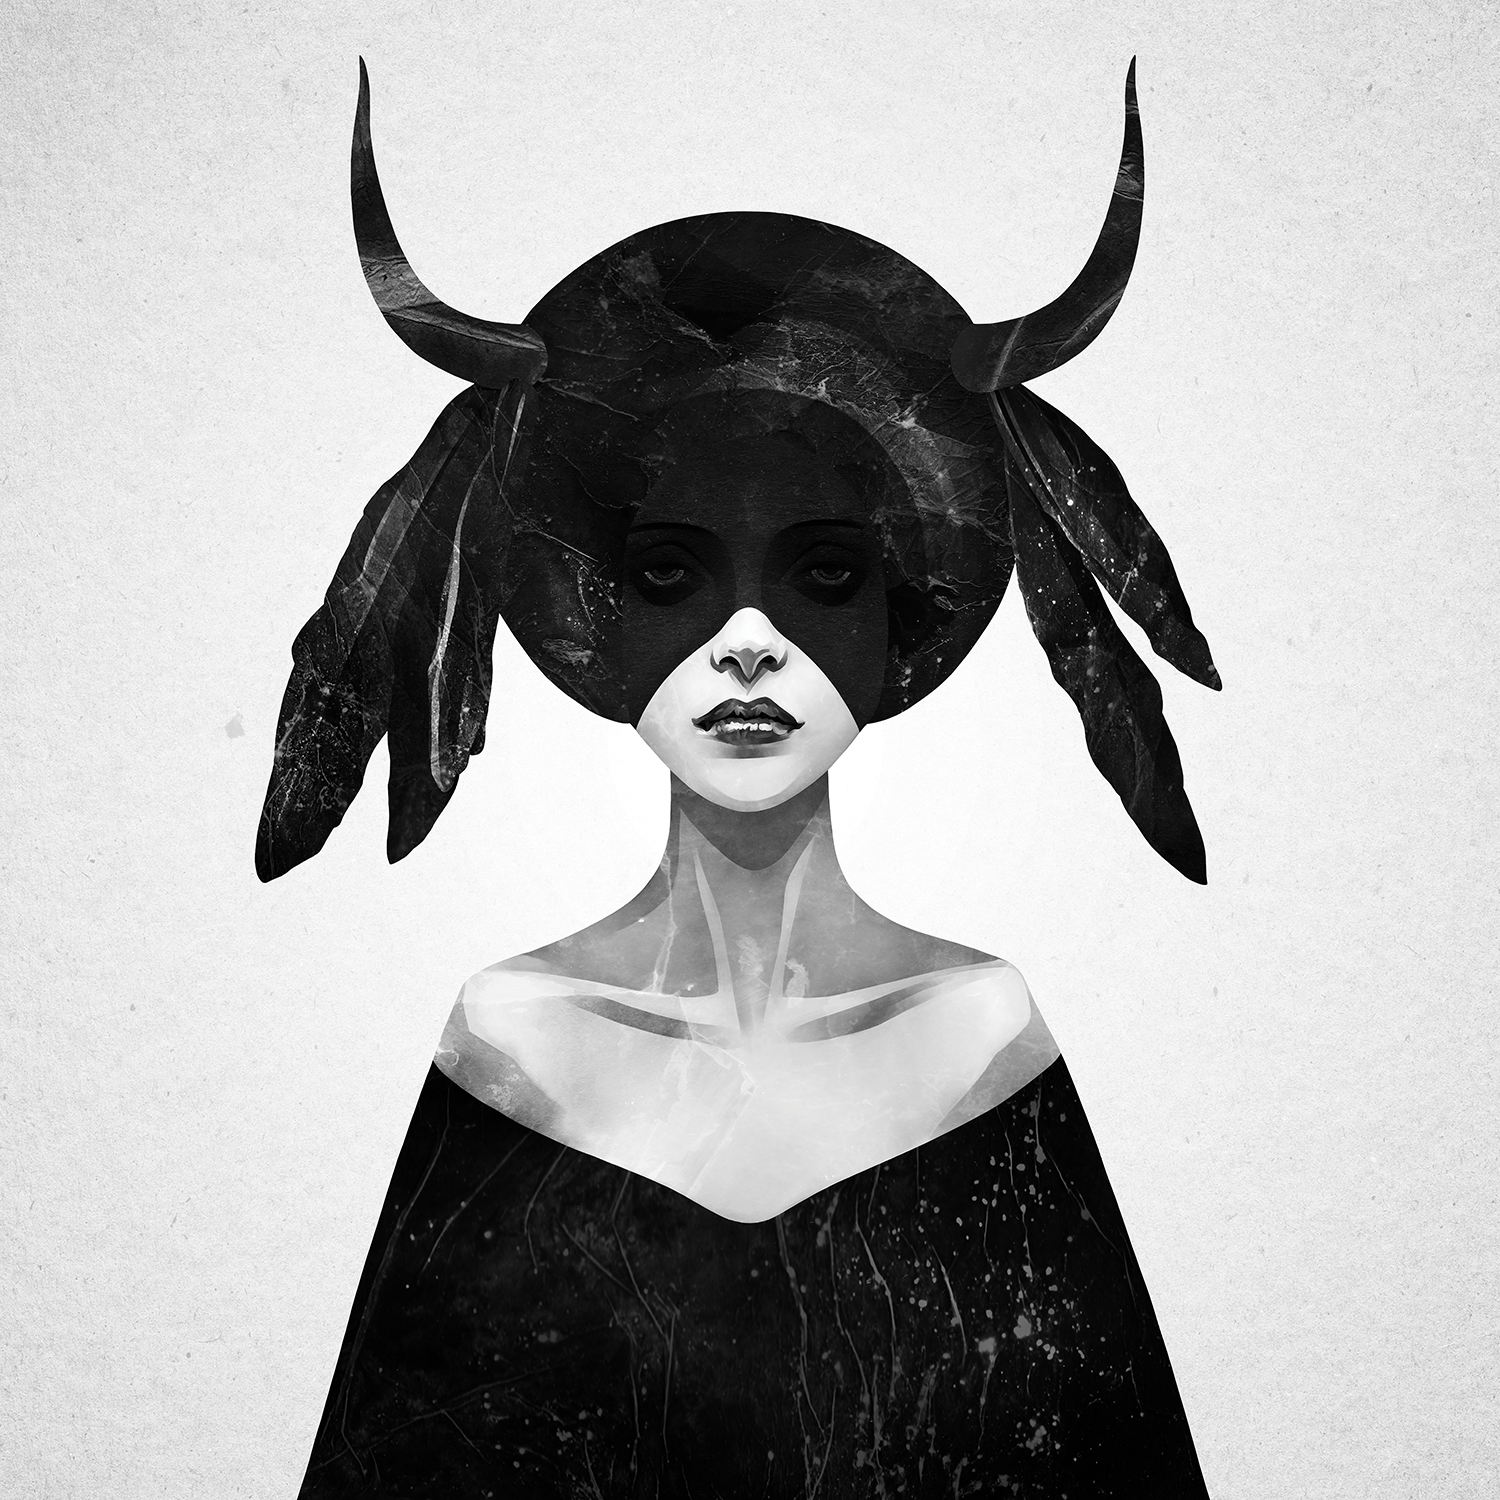 a woman whose face is mostly shadowed in black wearing a headpiece that has antlers and feathers